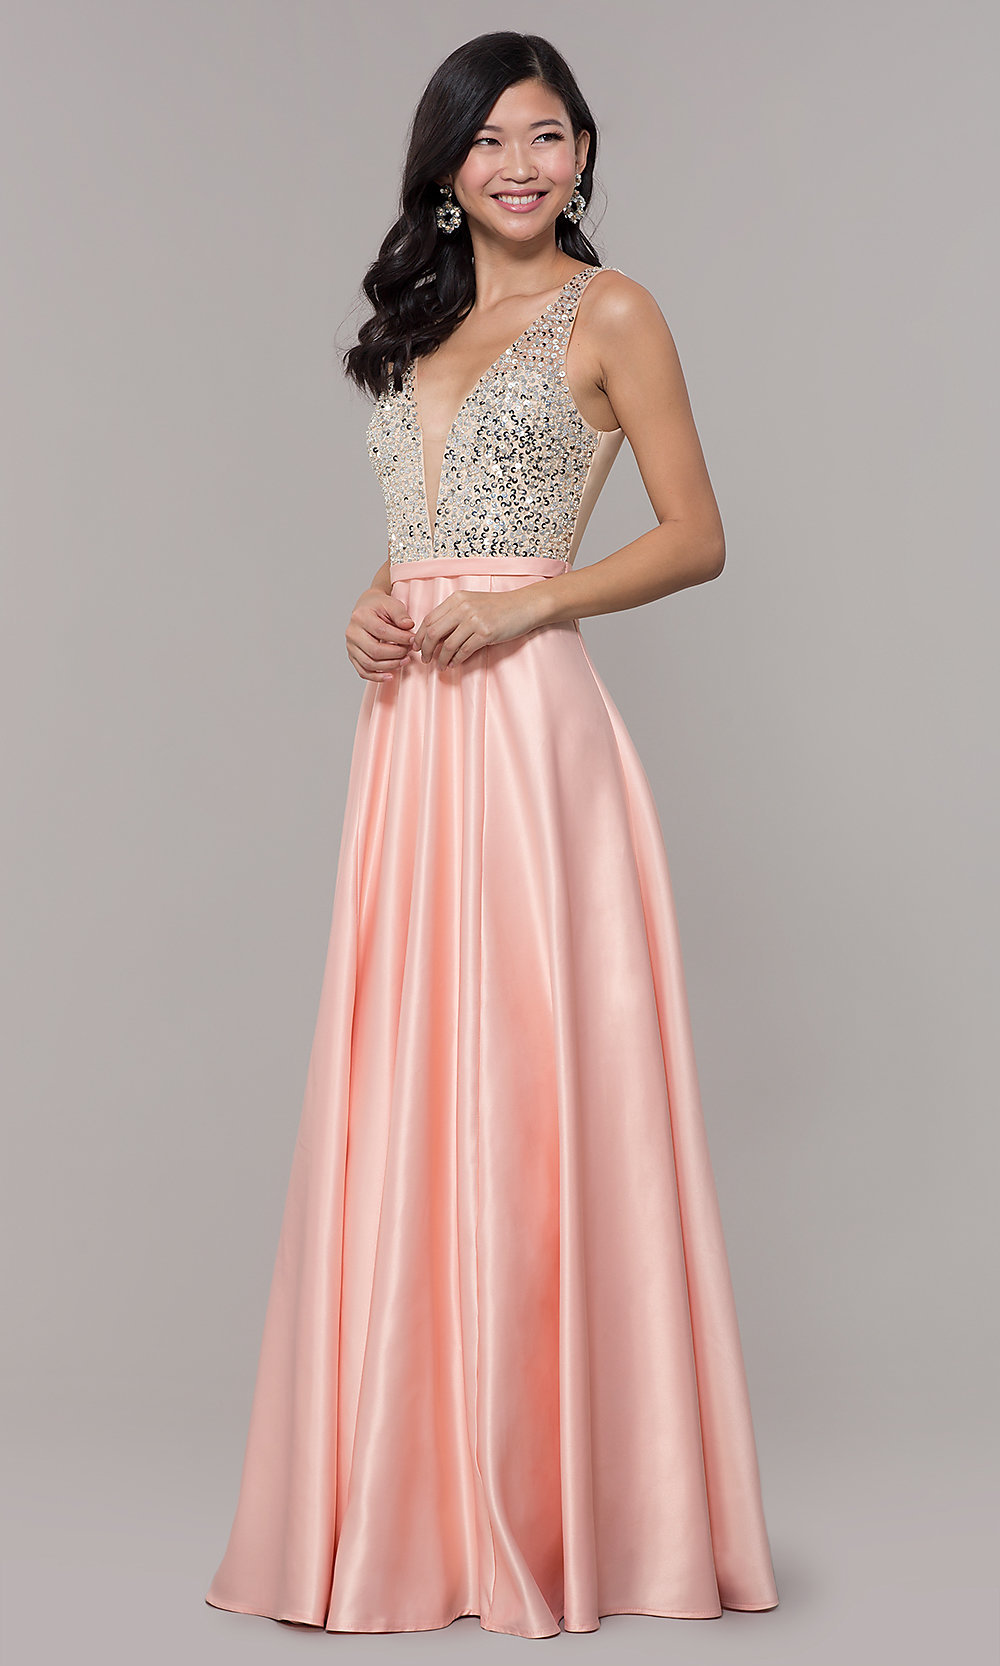 Satin V-Neck Long Prom Dress with Sequins - PromGirl